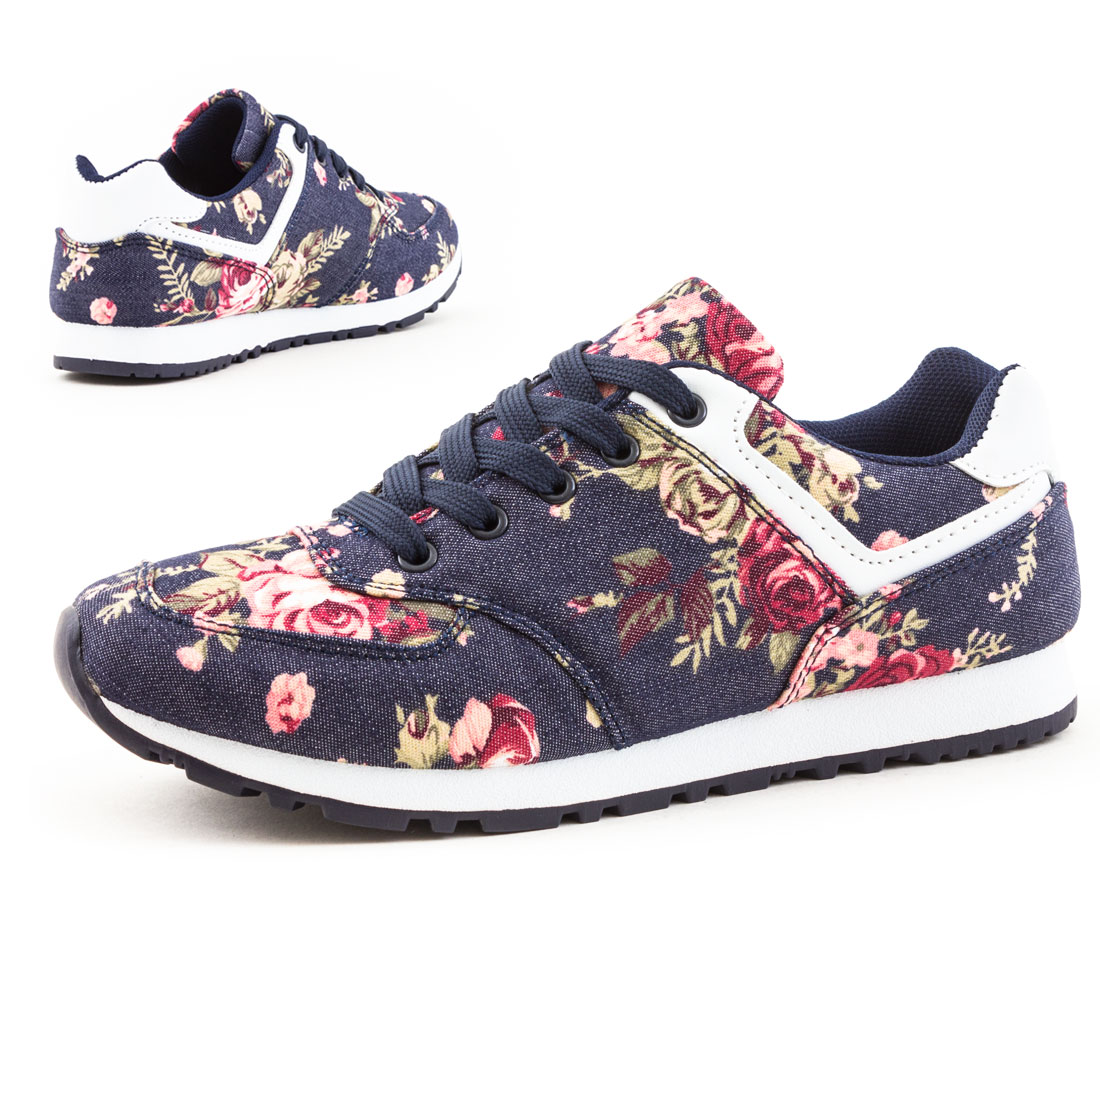 neu damen freizeit sport sneaker blumen camouflage schuhe gr 36 37 38 39 40 41 ebay. Black Bedroom Furniture Sets. Home Design Ideas